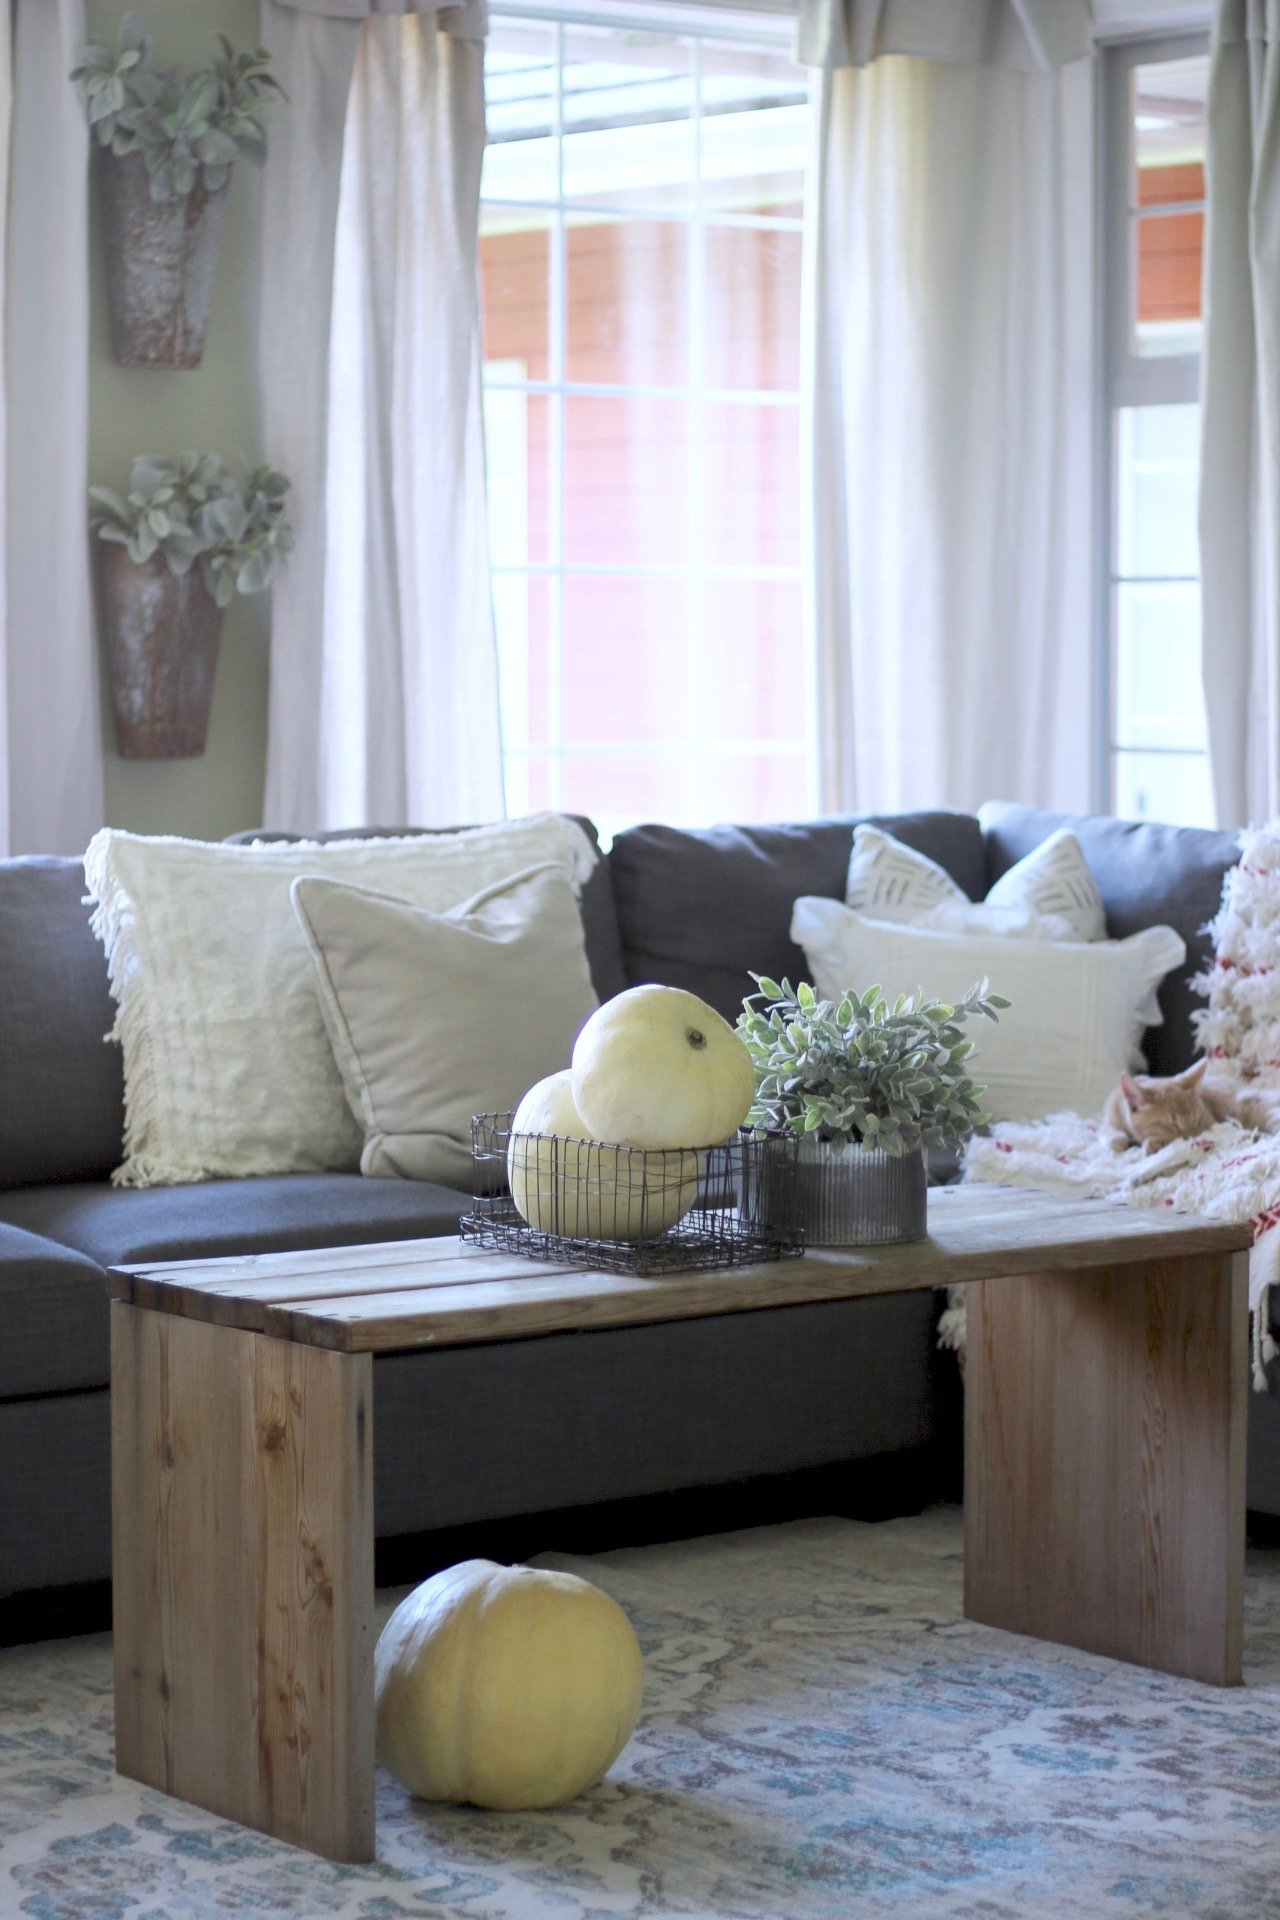 Farmhouse Decorating On A Penny. Easy ways to make your home look cozy and like a fixer upper home on the cheap